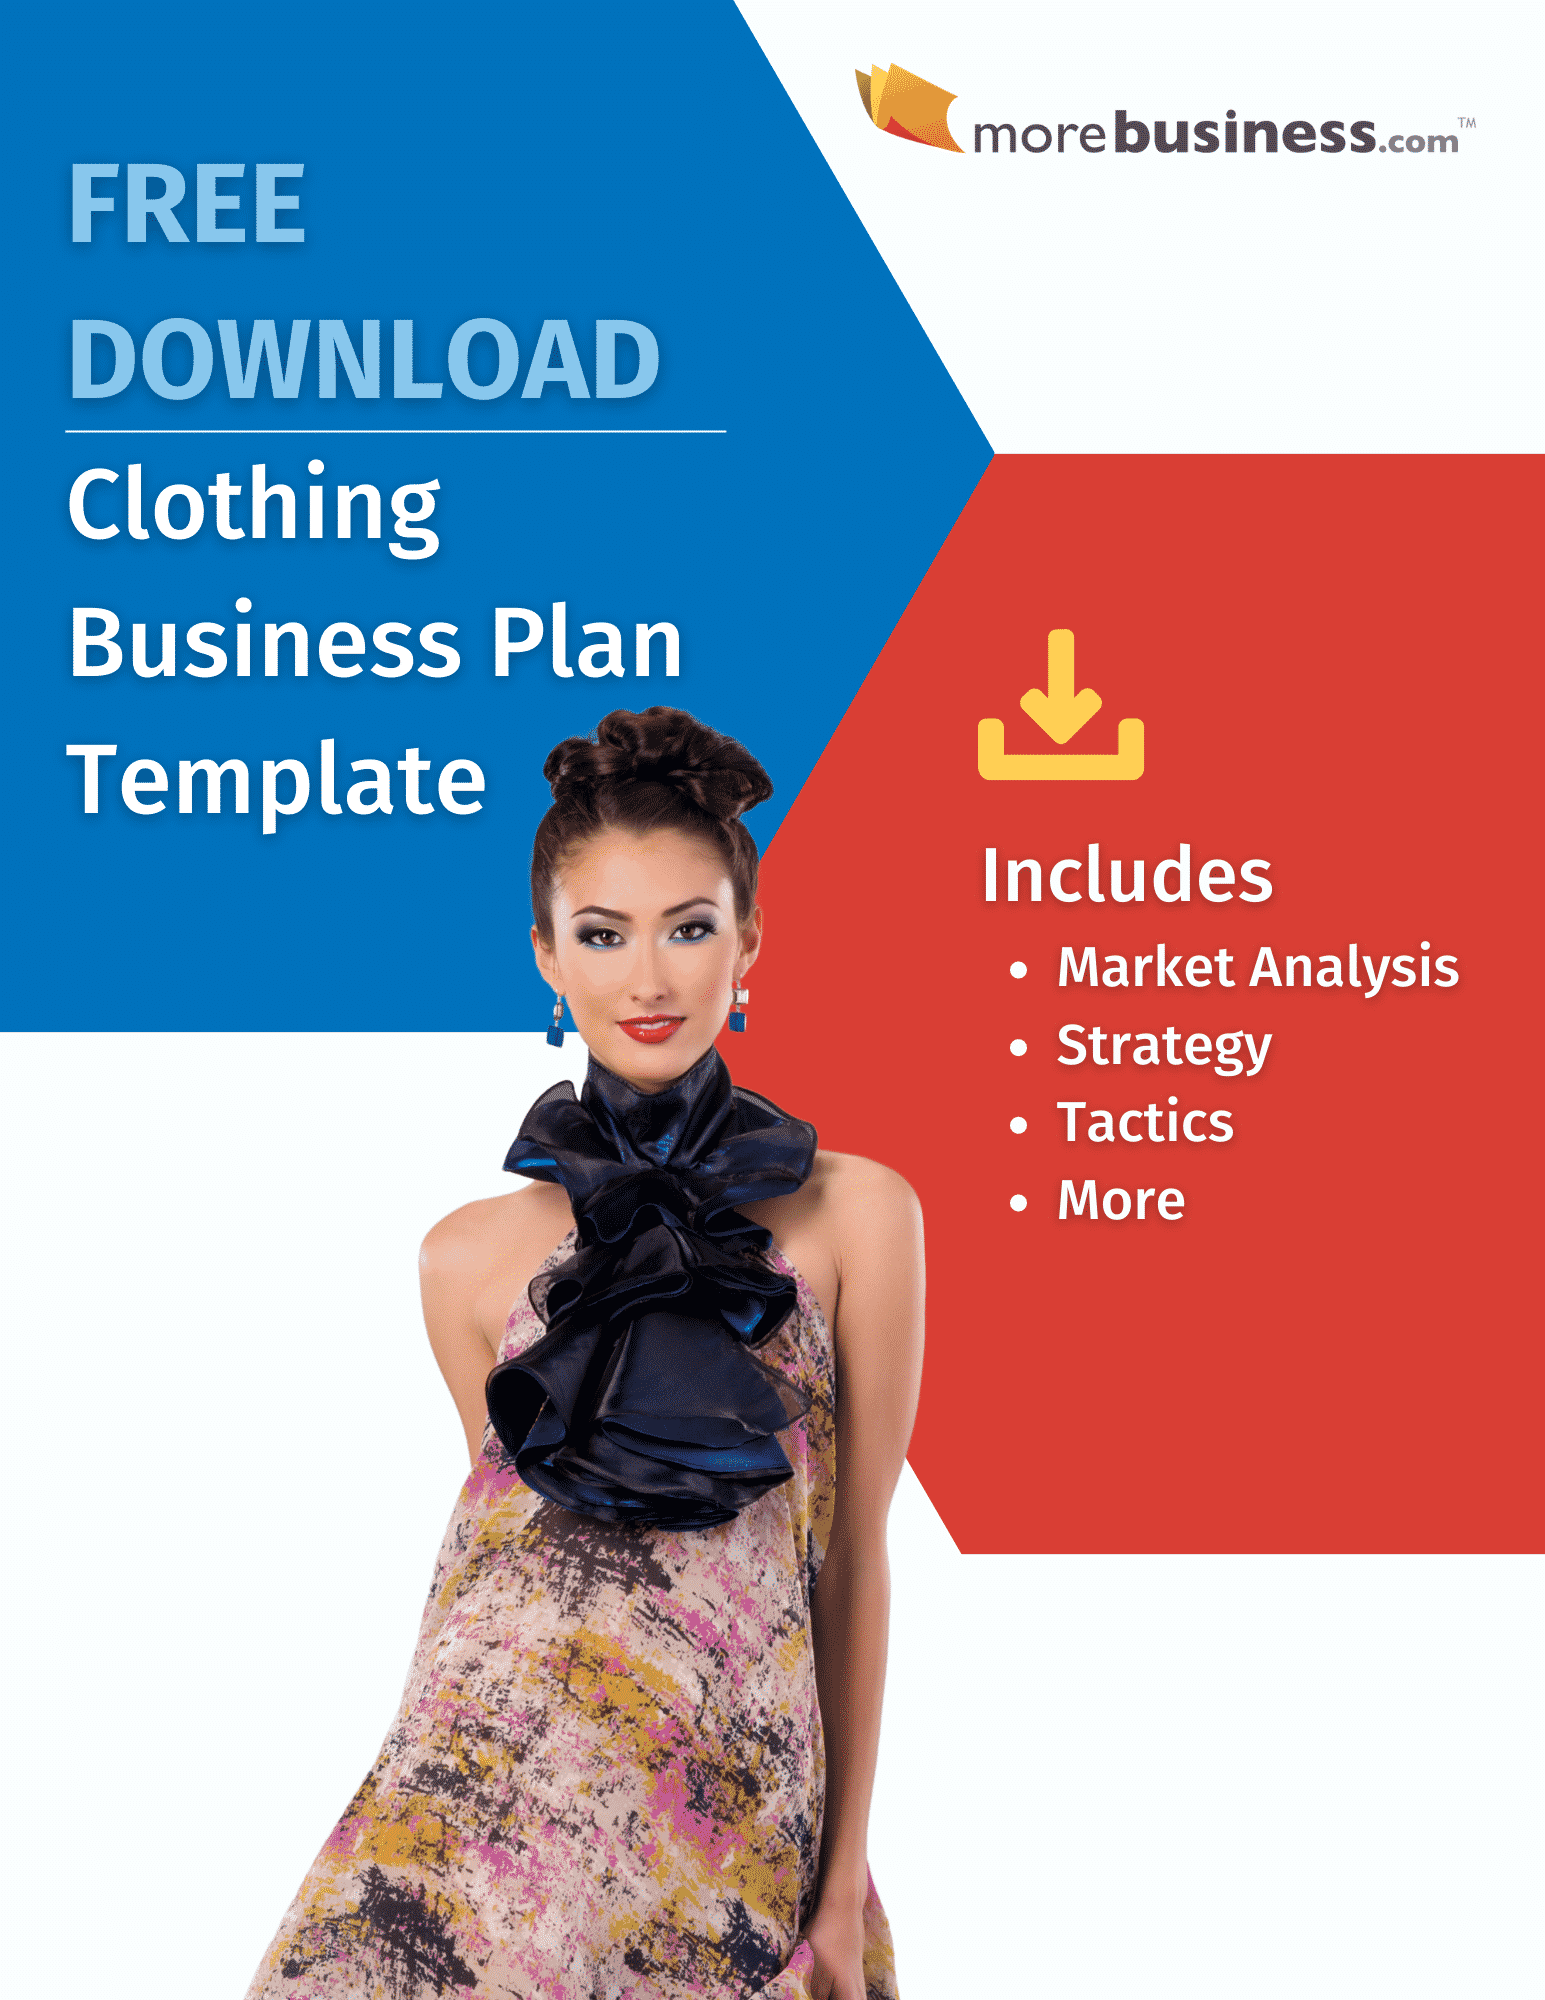 clothing business plan - free download